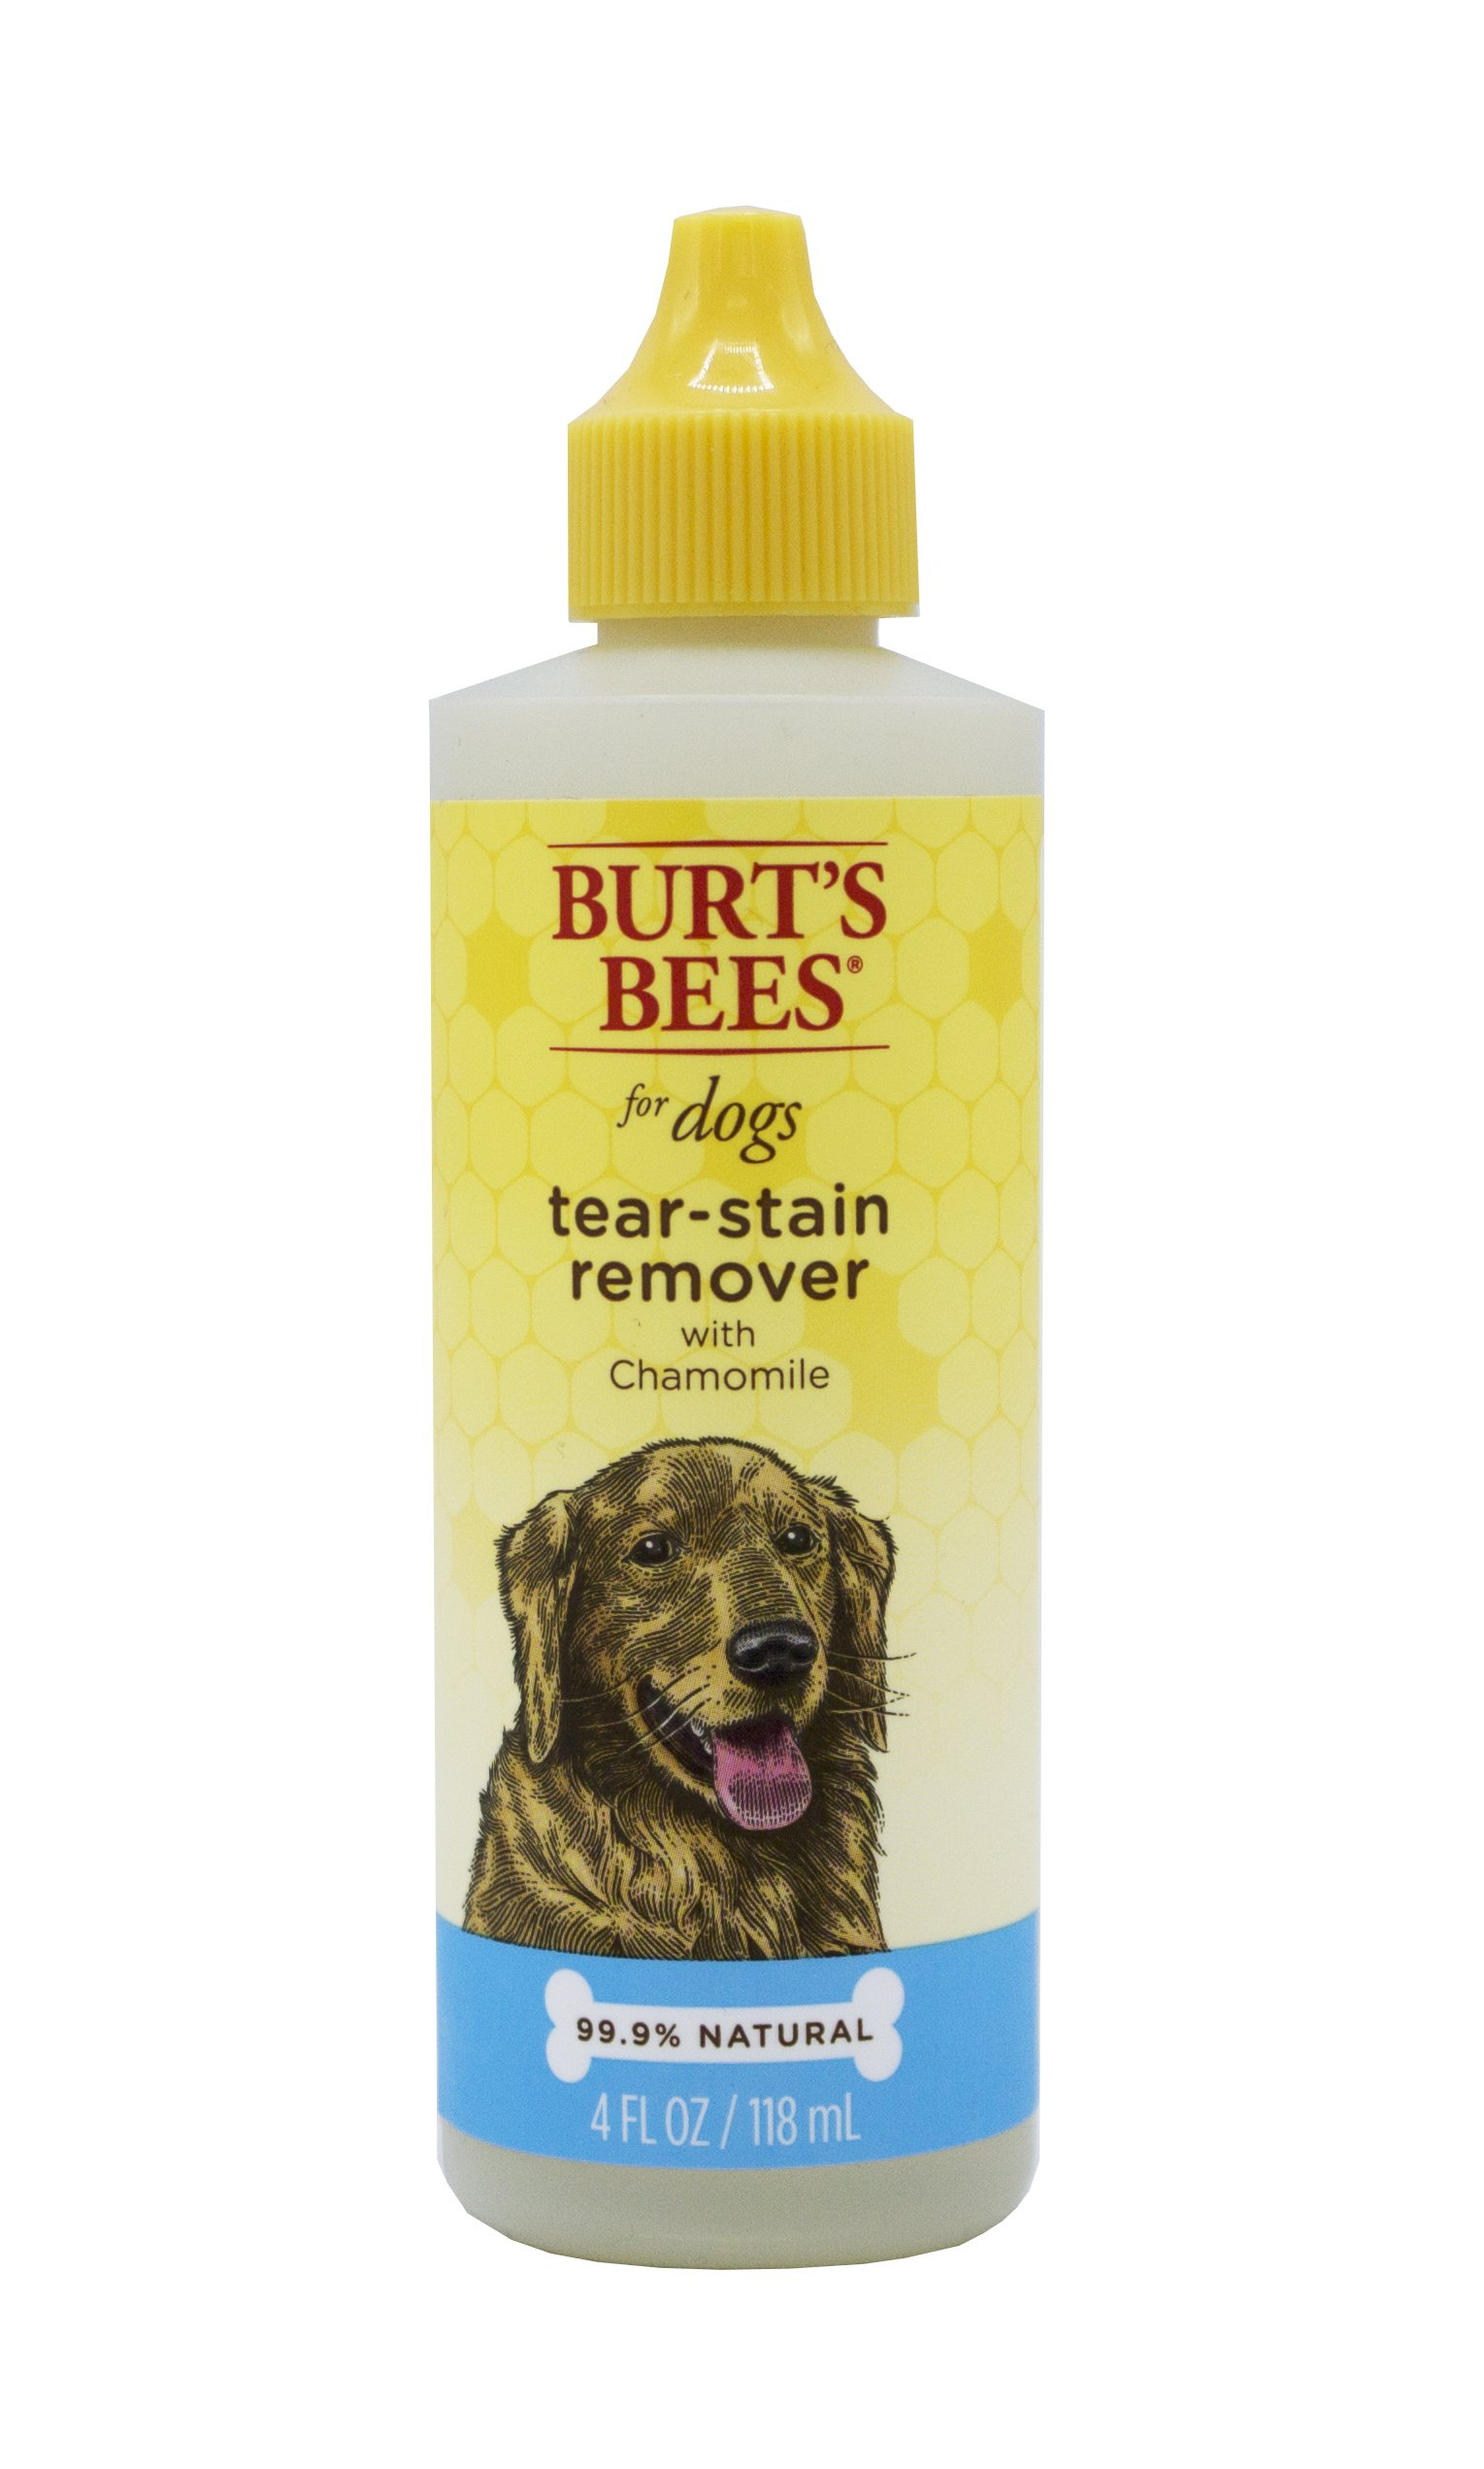 Burt's Bees for Dogs Natural Tear Stain Remover with Chamomile | Tear Stain Remover for Dogs Or Puppies, 4oz